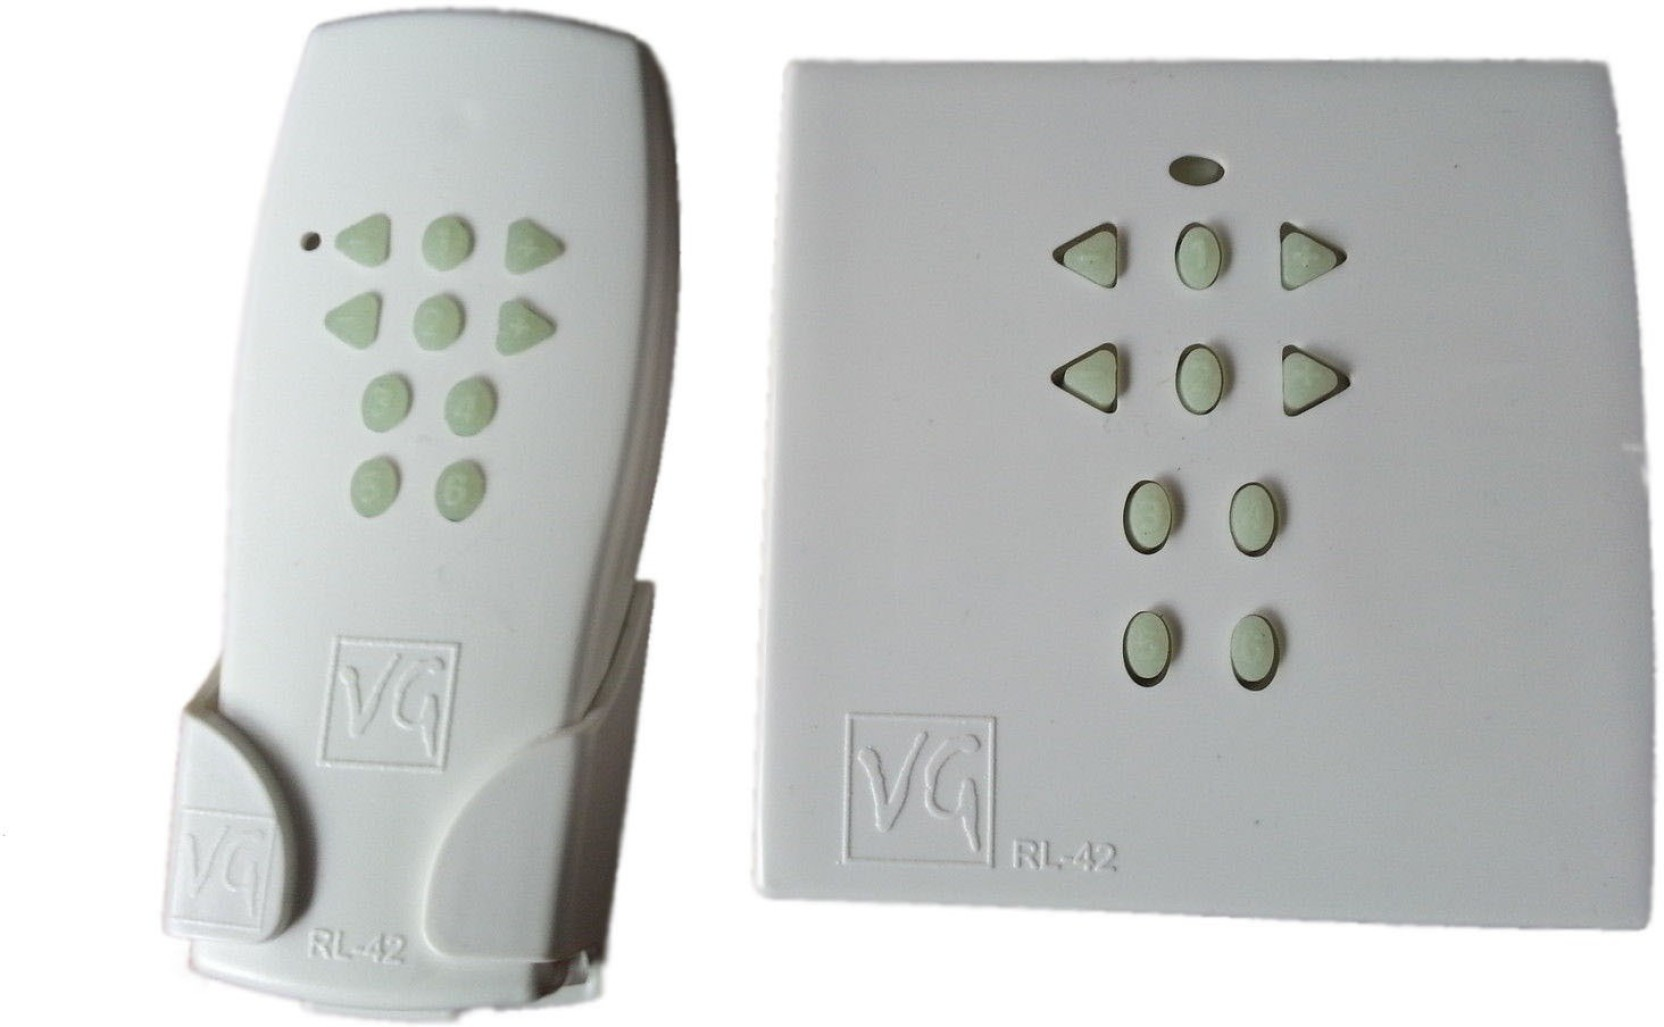 Vg Soni Tech Rf Remote Electrical Switch For 4 Lights And 2 Fans Dimmer Switches 101 Add To Cart